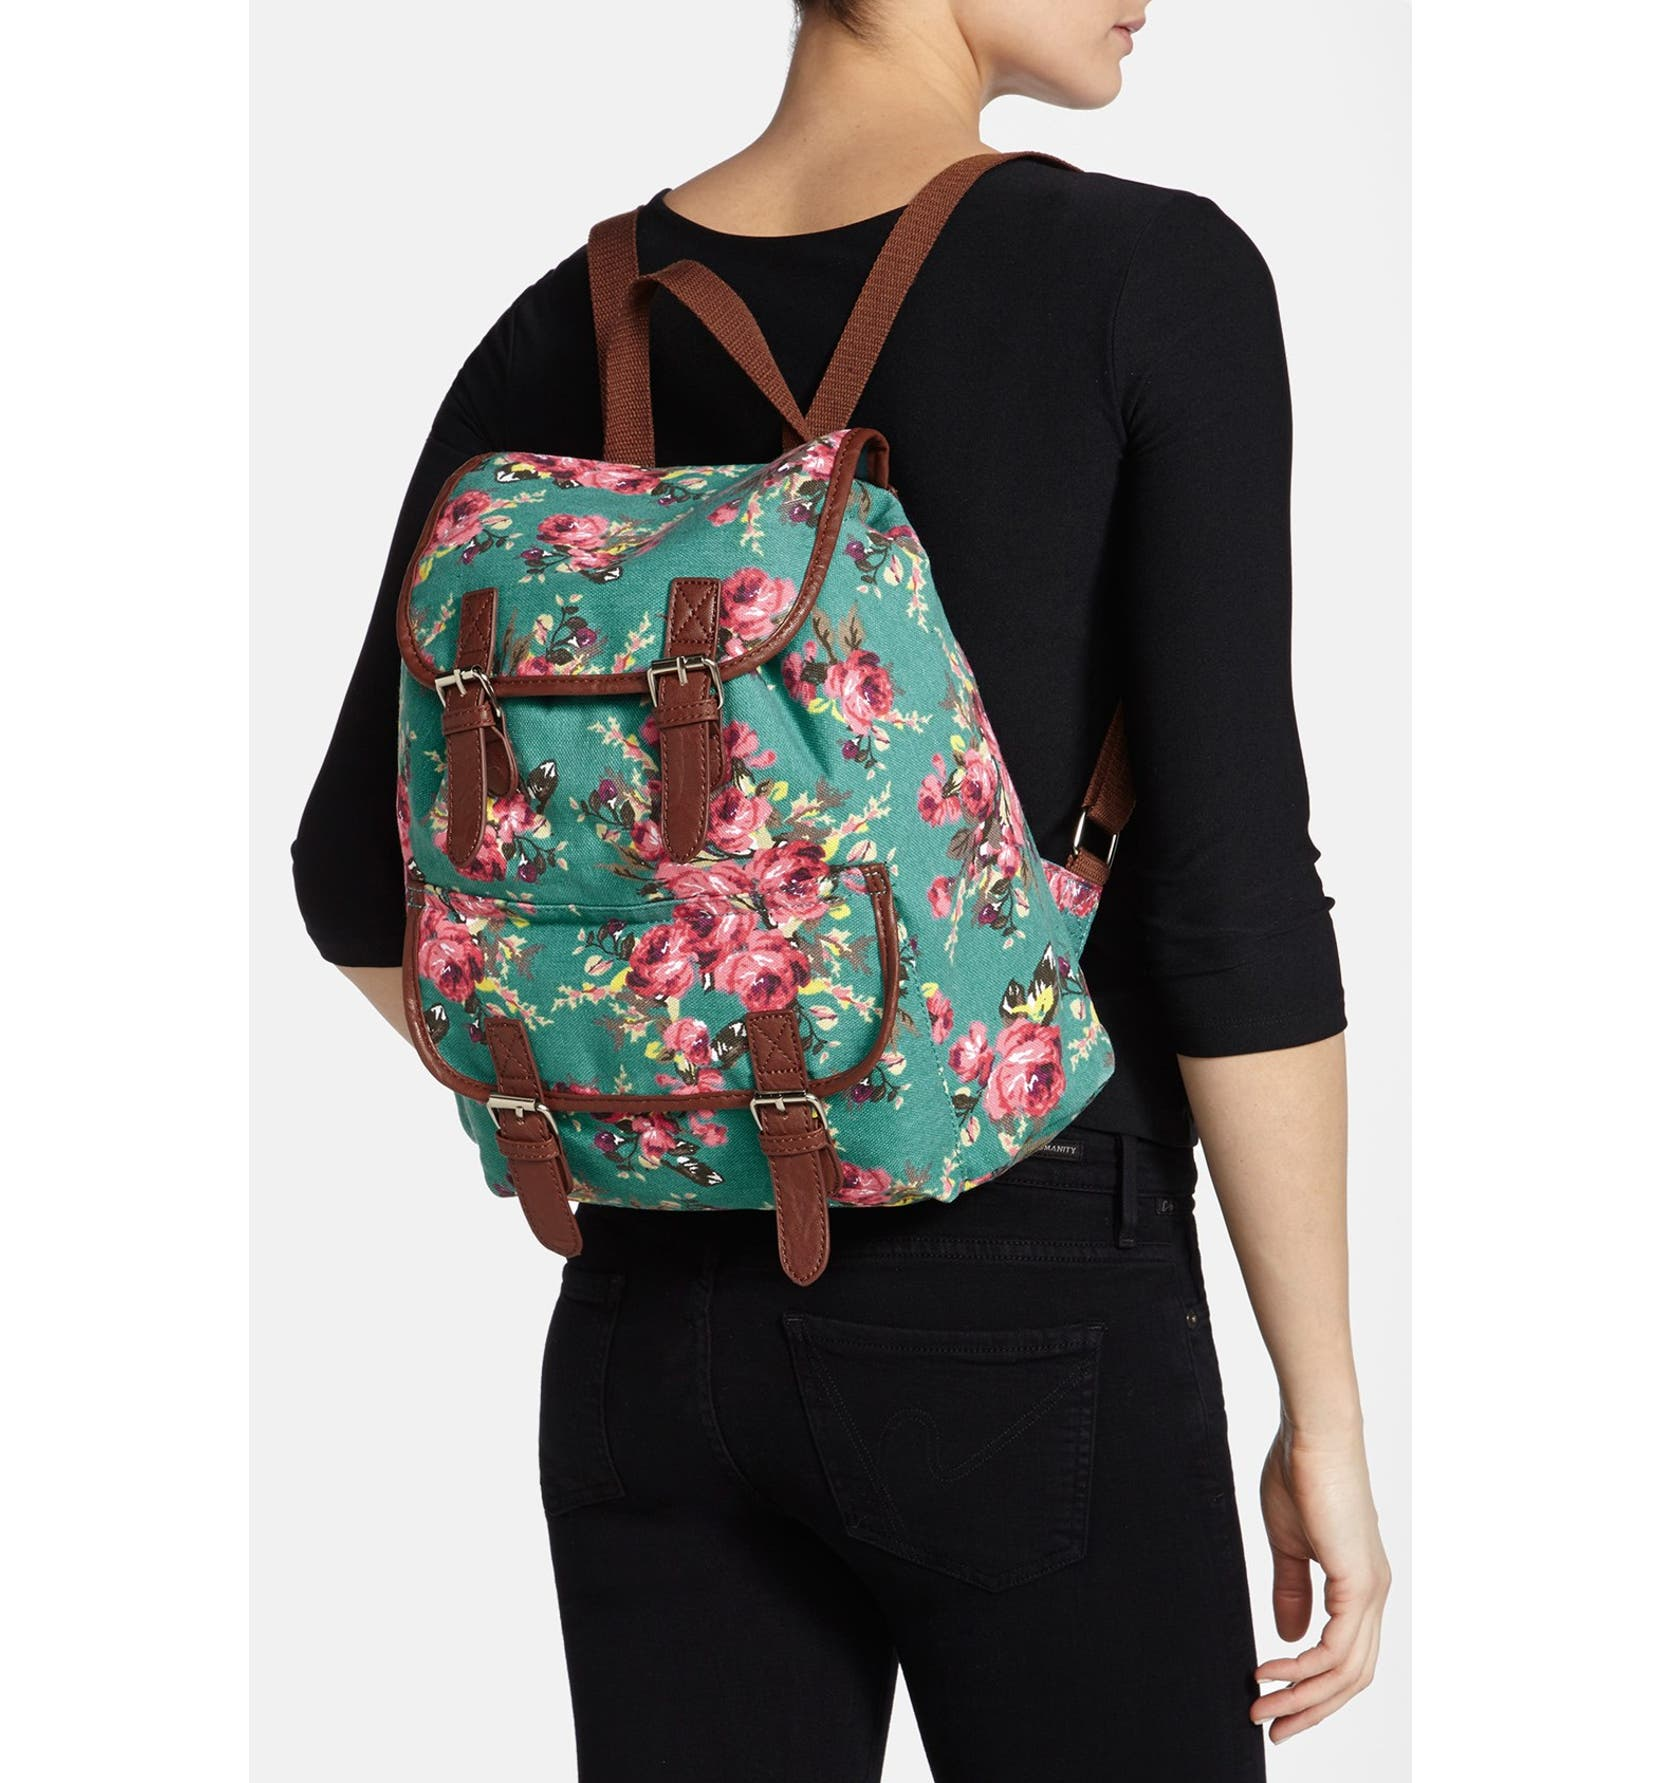 c73eb4dc17c8 Amici Accessories Floral Canvas Backpack (Juniors) (Online Only ...